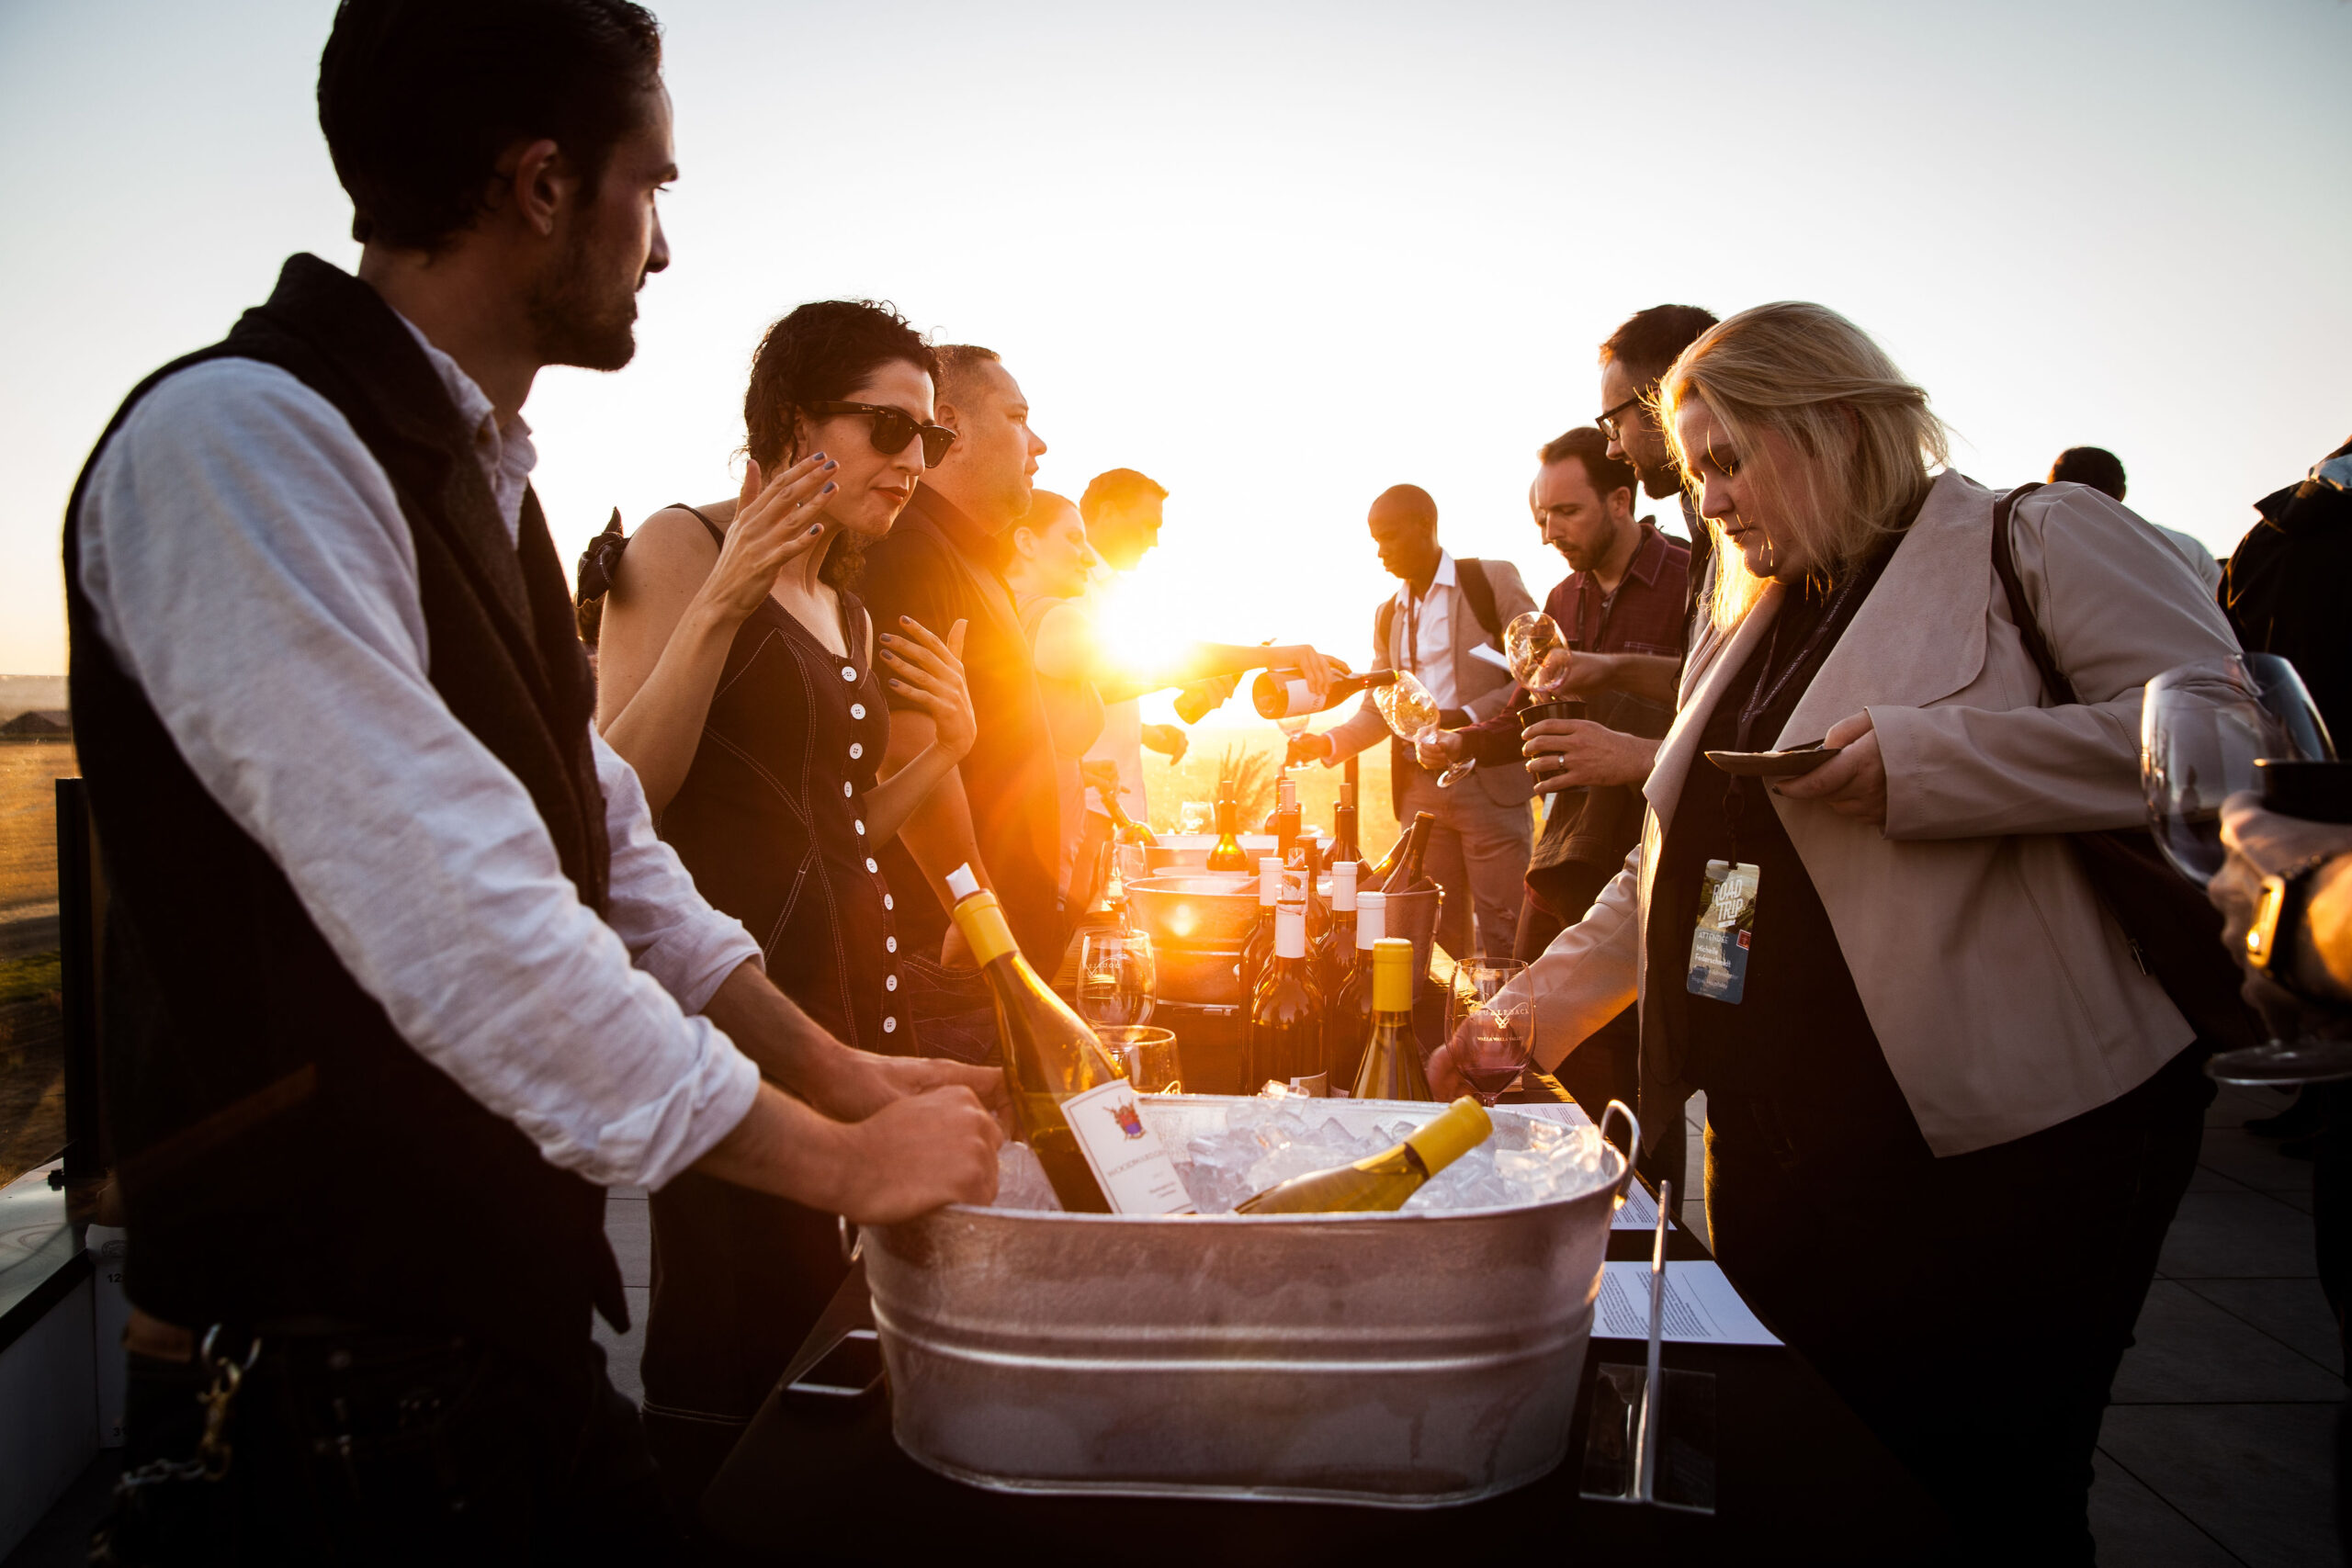 People line two sides of a long table, talking and pouring wine. A bucket of ice and bottles of wine are closest to the viewer and bright yellow sun pierces between the people.